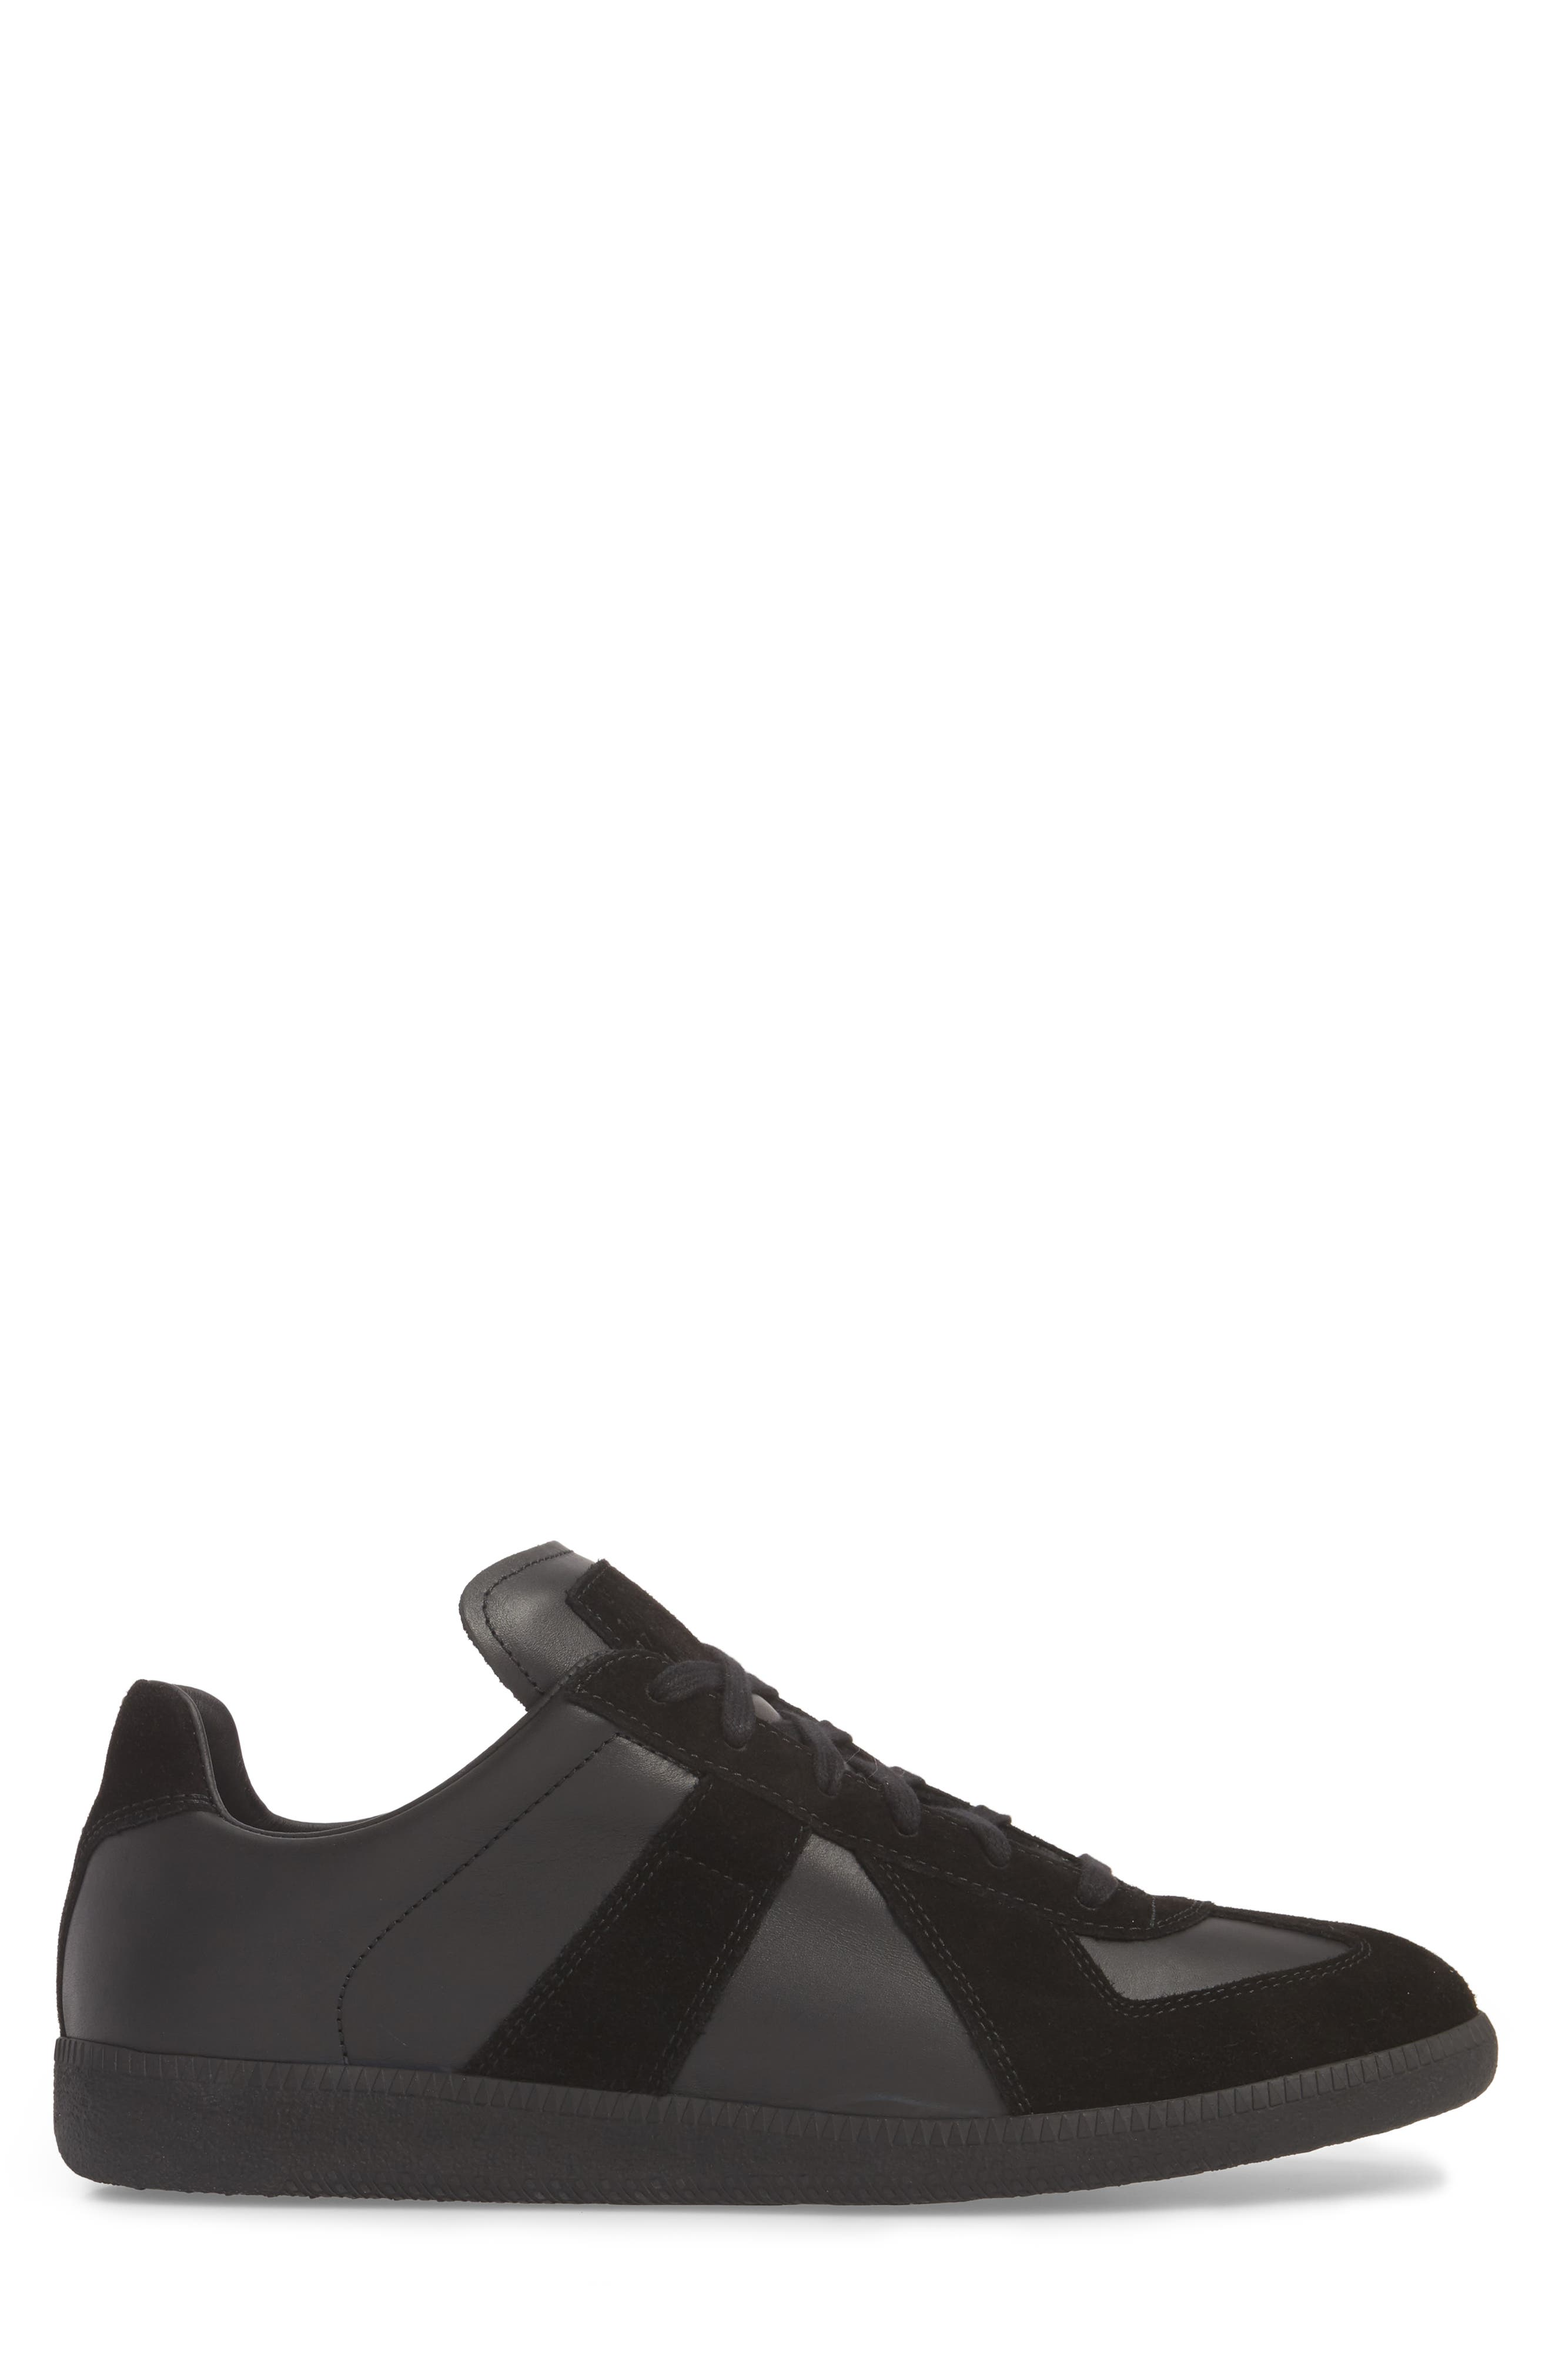 Maison Margiela Replica Low Top Sneaker,                             Alternate thumbnail 3, color,                             BLACK